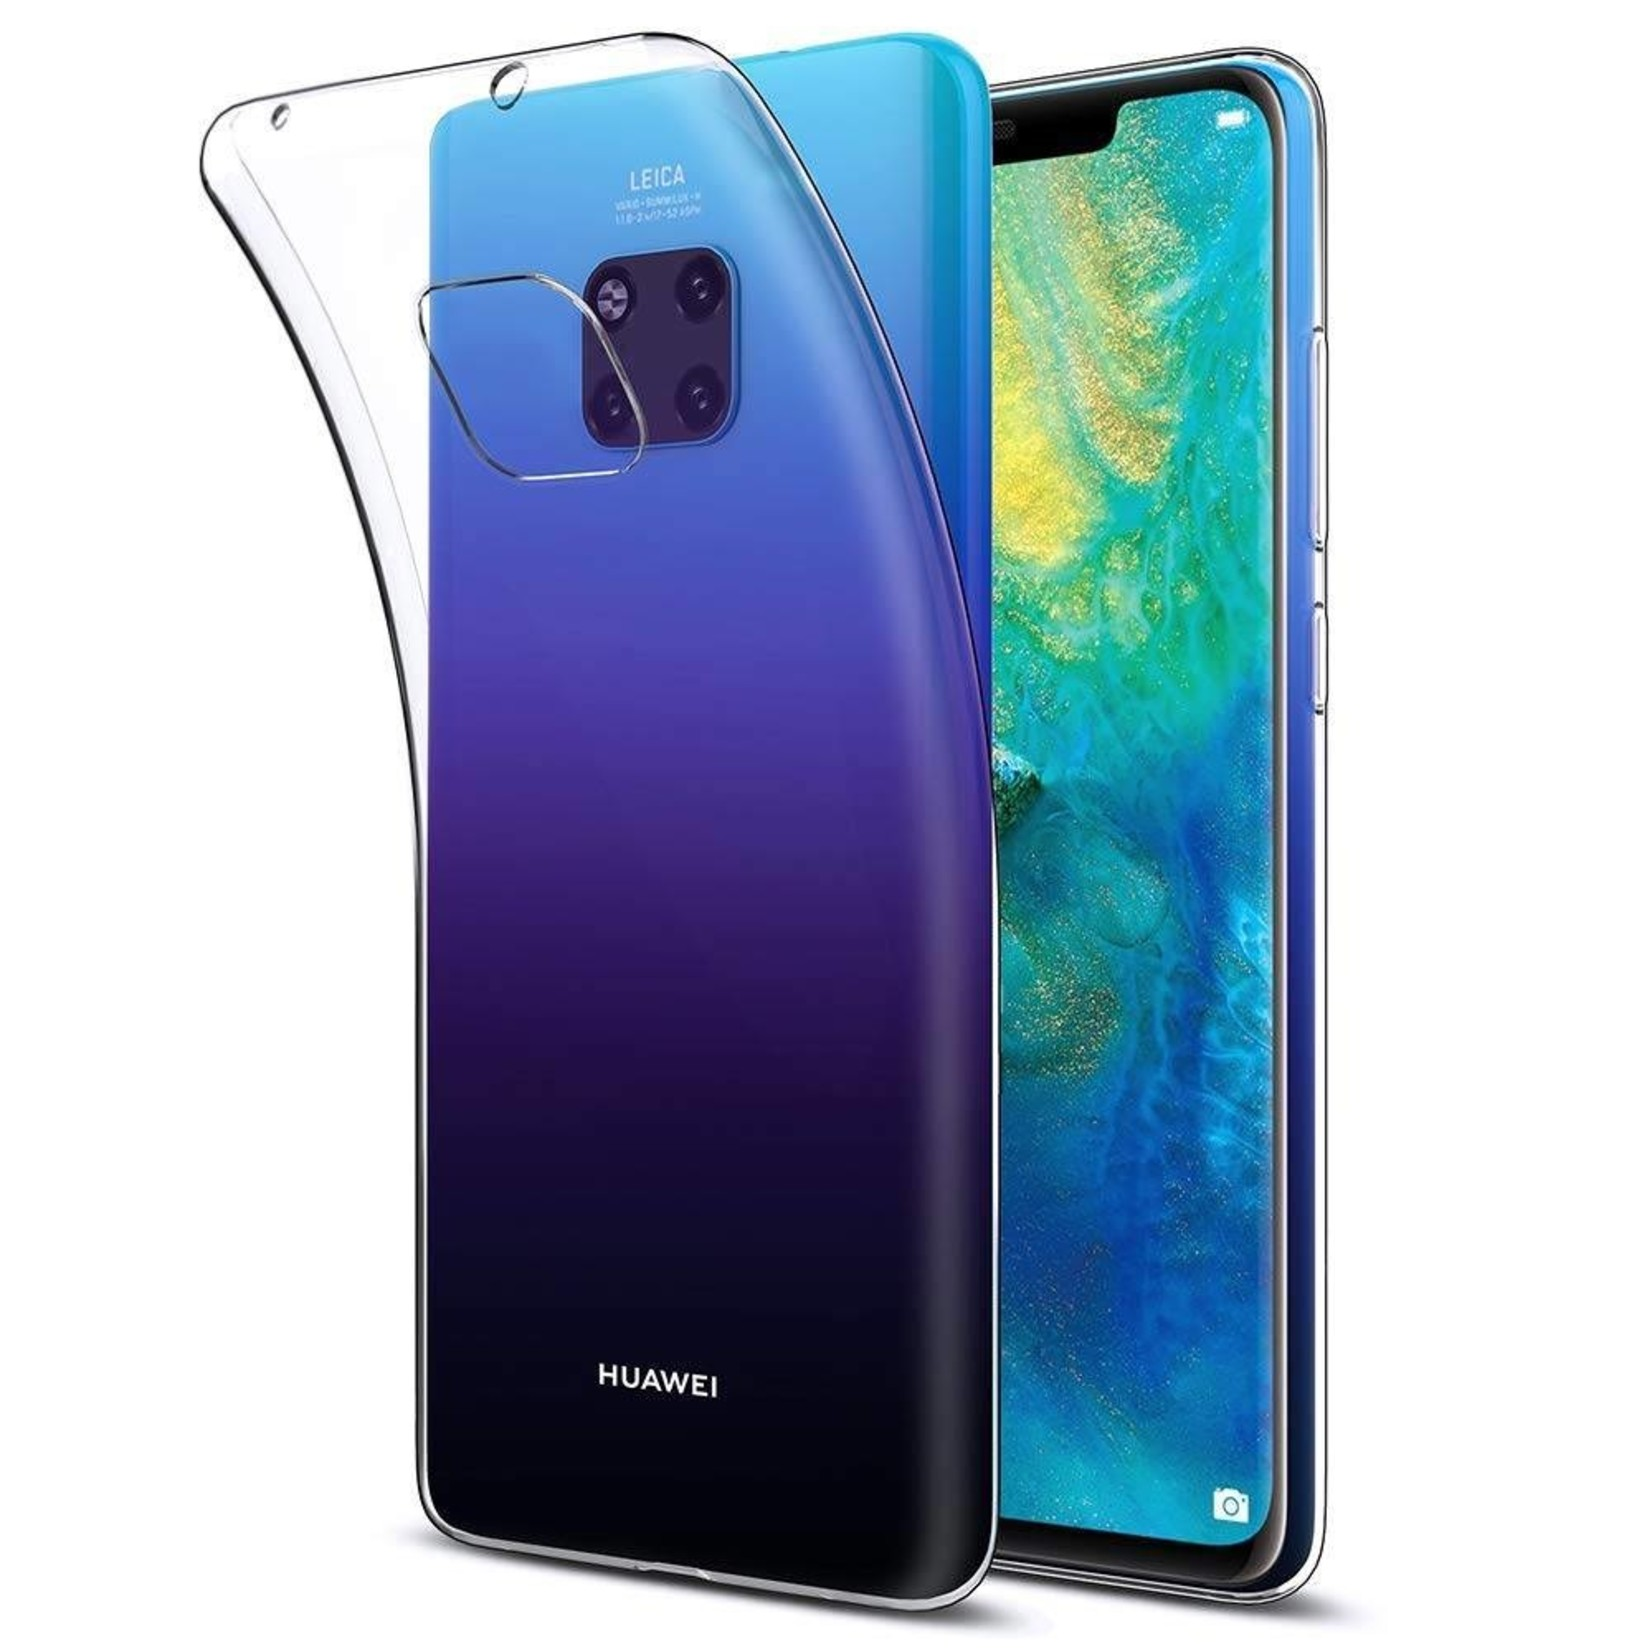 Colorfone Hoesje CoolSkin3T voor Huawei Mate 20 Pro Transparant Wit